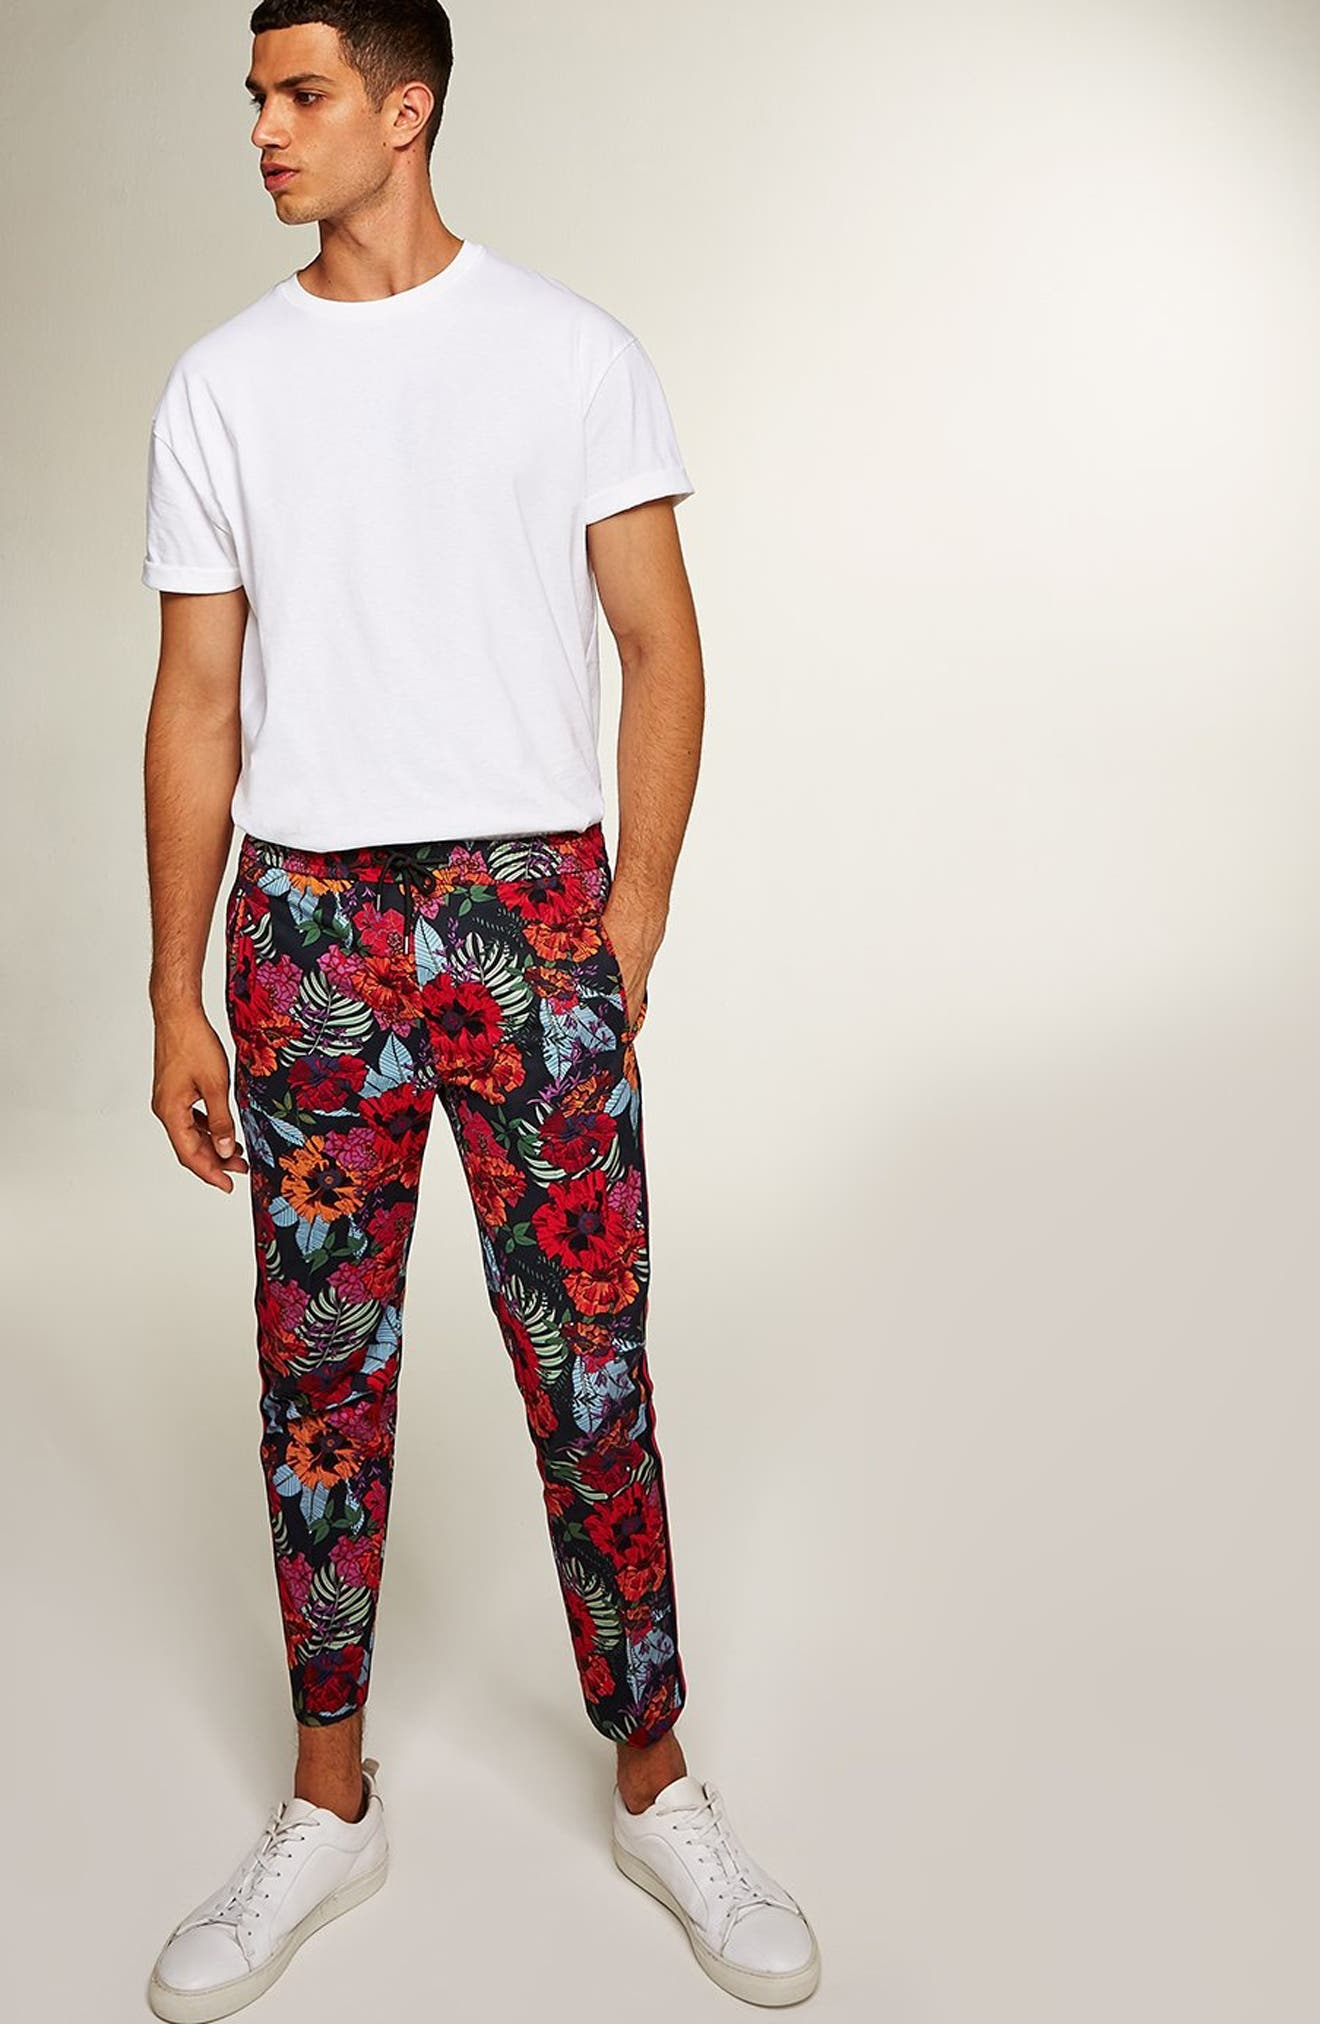 Topshop Floral Jogger Pants,                             Alternate thumbnail 5, color,                             RED MULTI